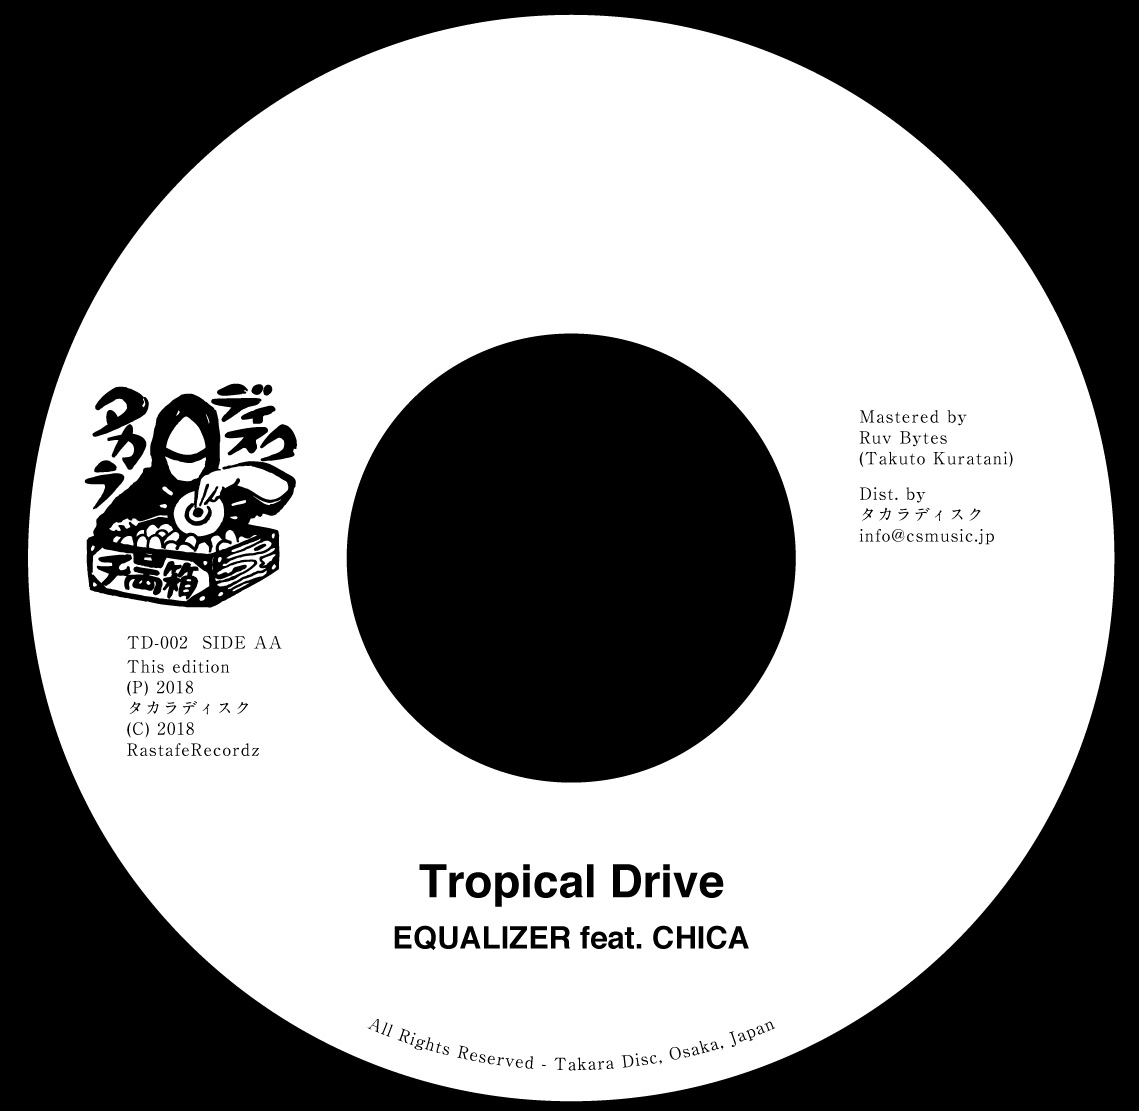 Tropical Drive Remixed by EQUALIZER